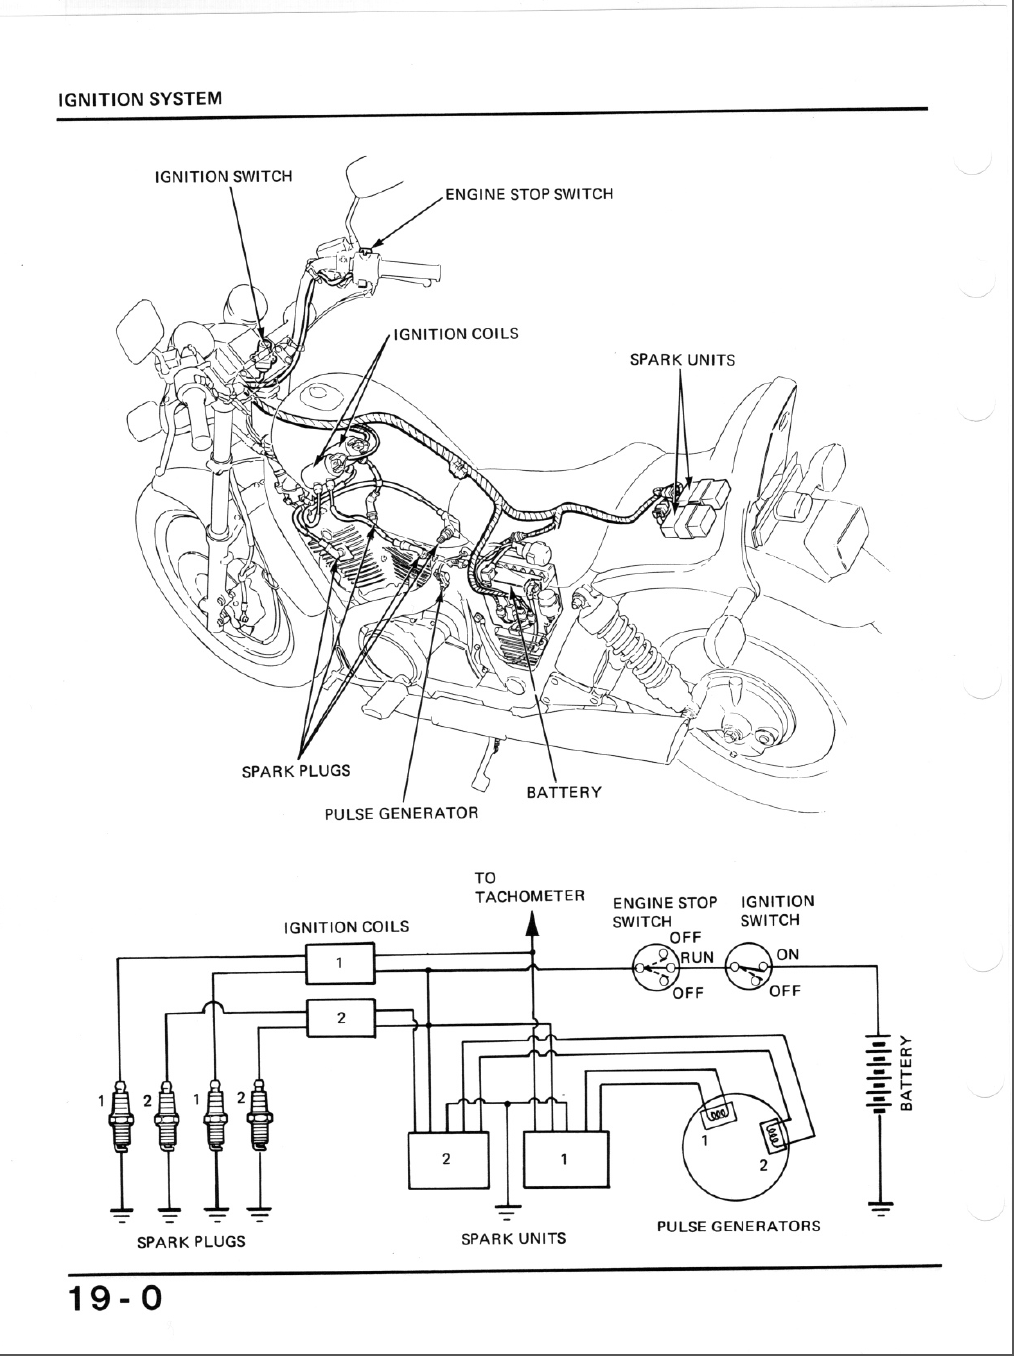 1999 honda shadow 1100 spirit wiring diagram   44 wiring